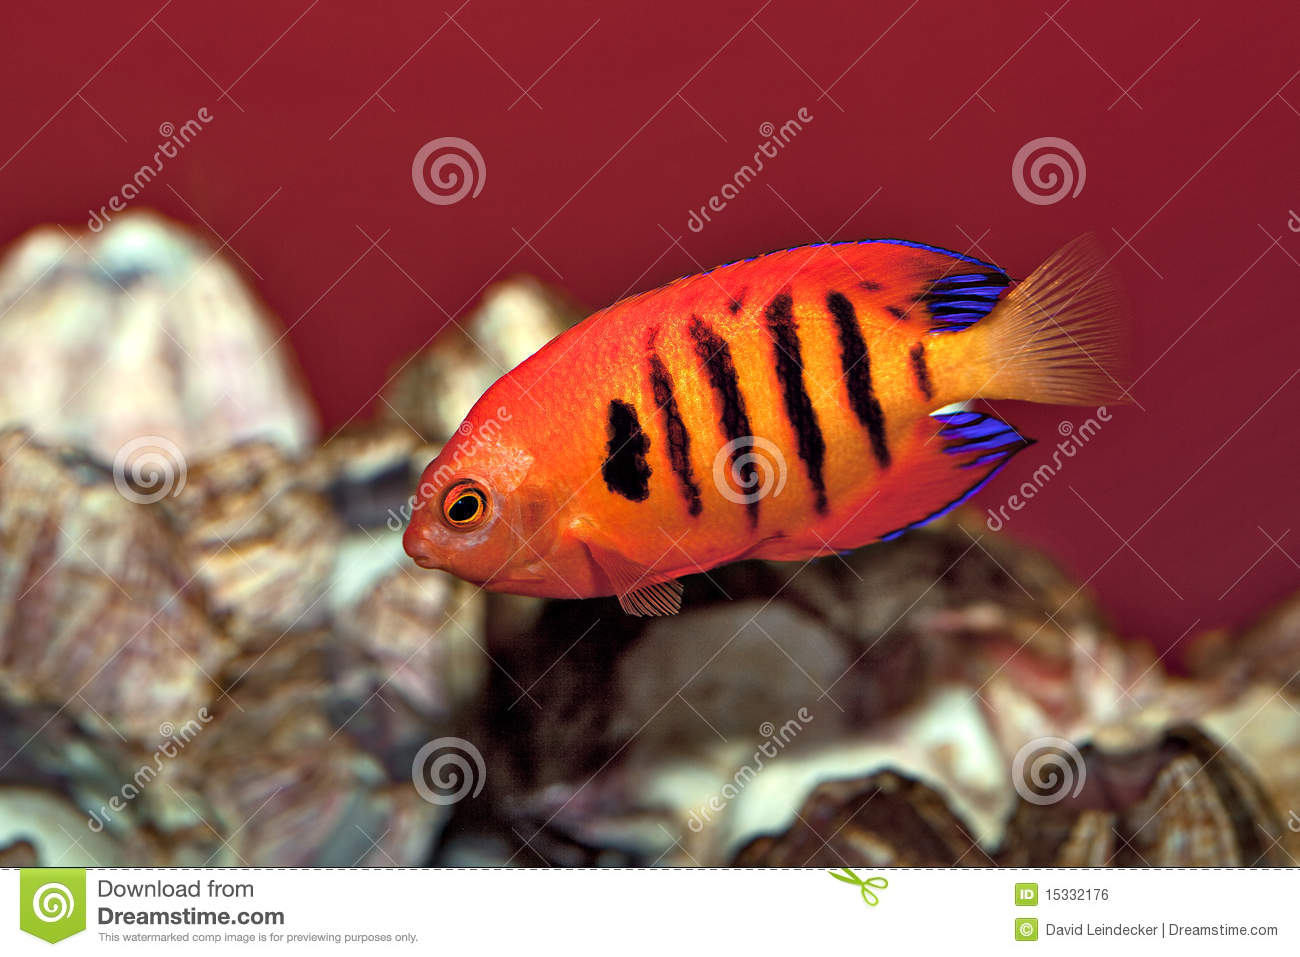 Tropical Angel Fish With Stripes Stock Image - Image of marine ...